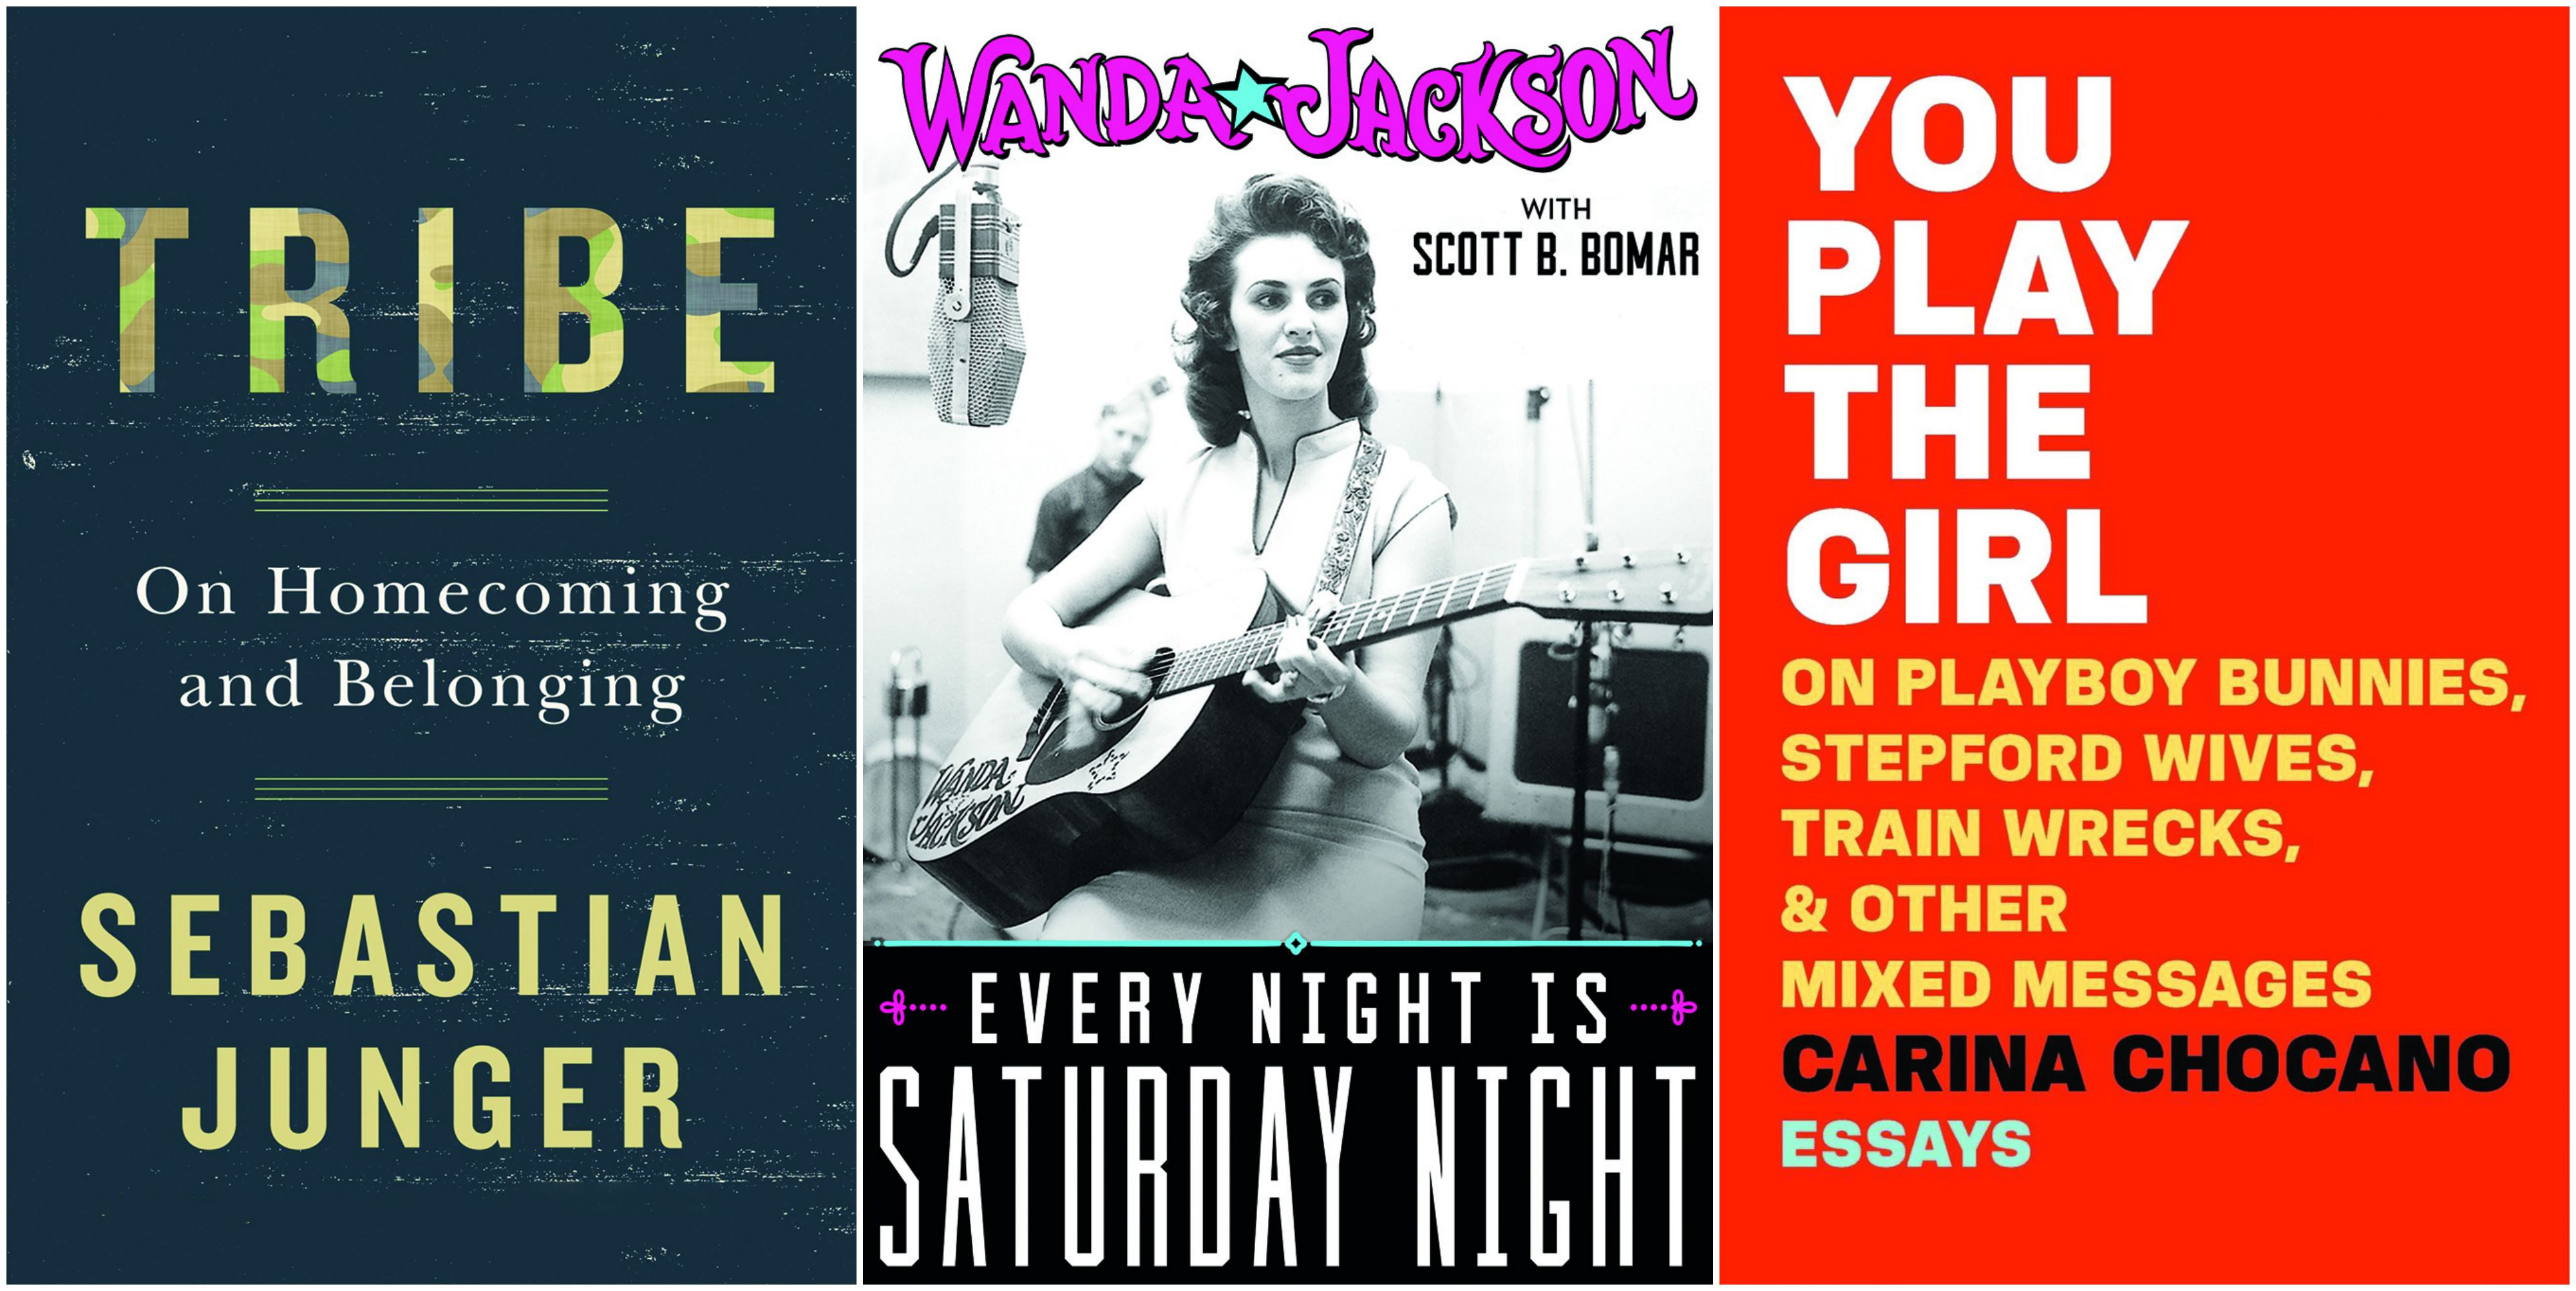 Sebastian Junger, Wanda Jackson and Carina Chocano will attend the Arkansas Literary Festival